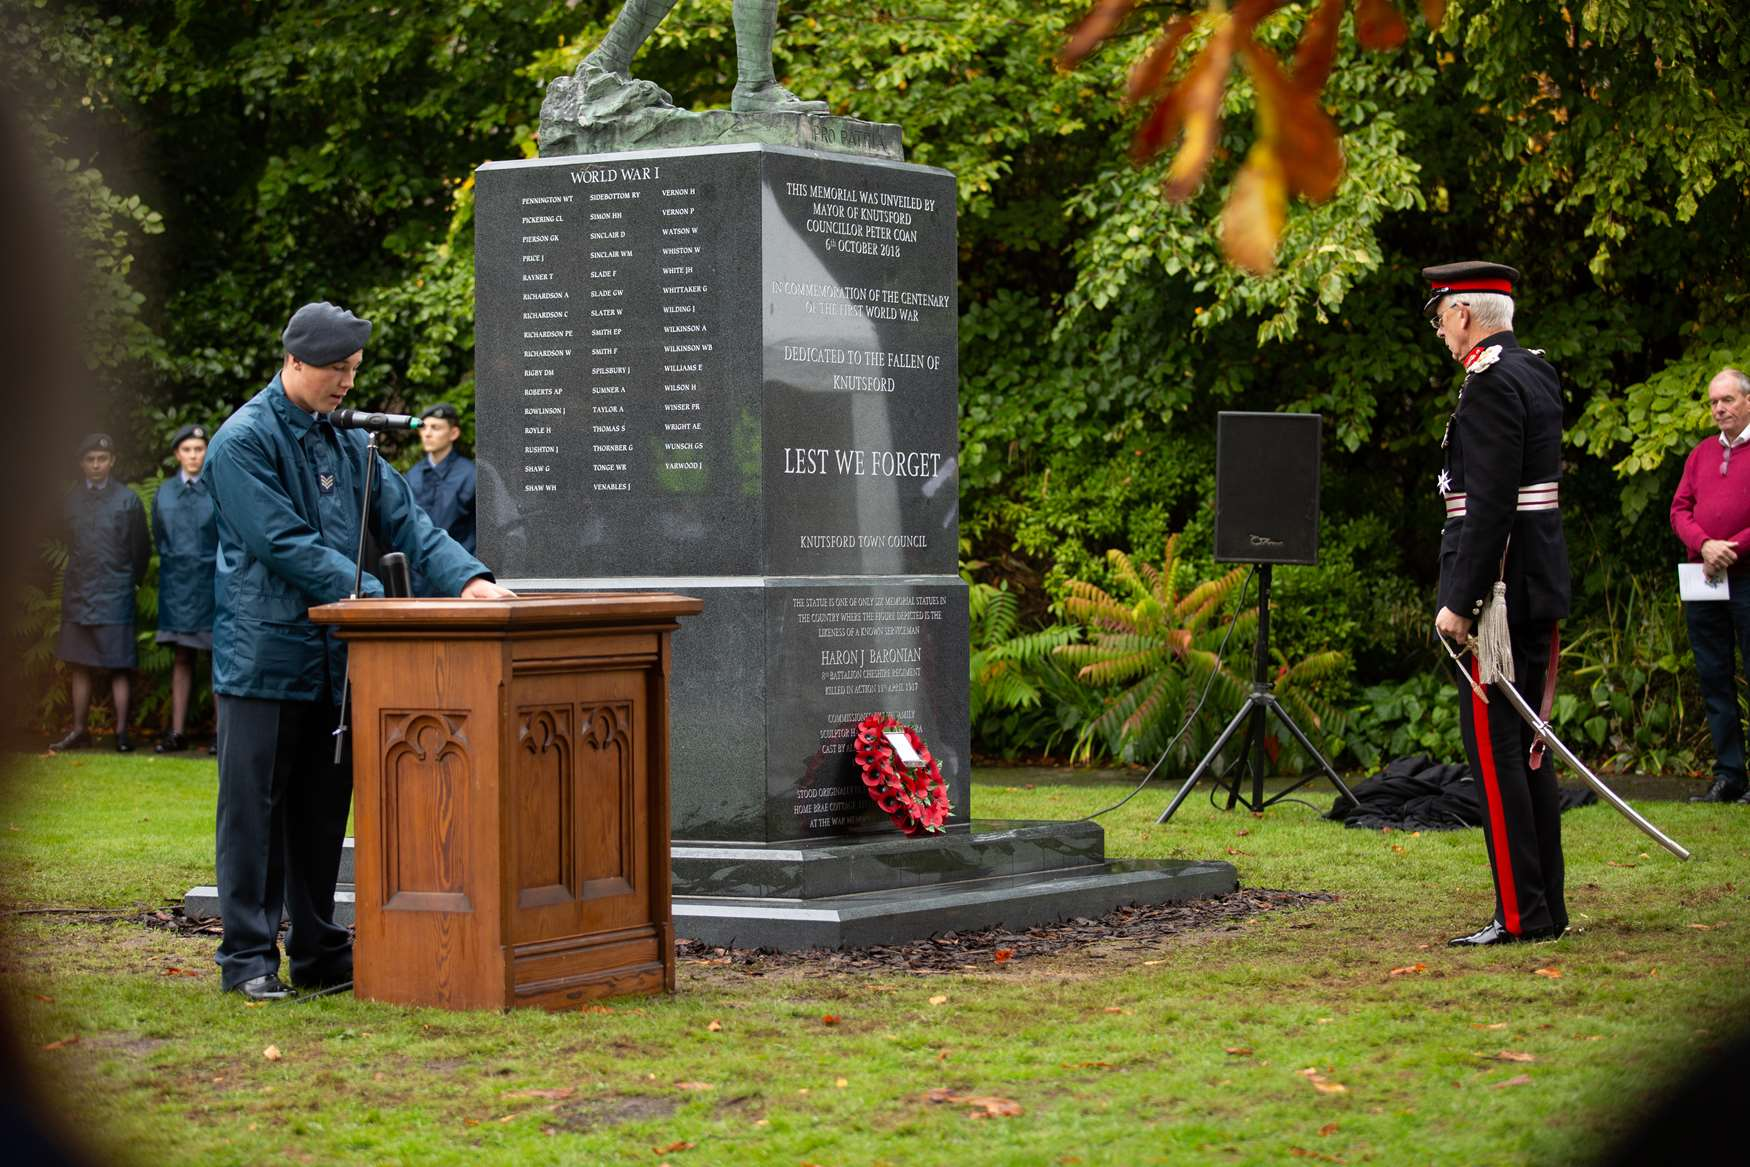 Lord Lieutenant stands at the memorial as a cadet reads from a lecturn